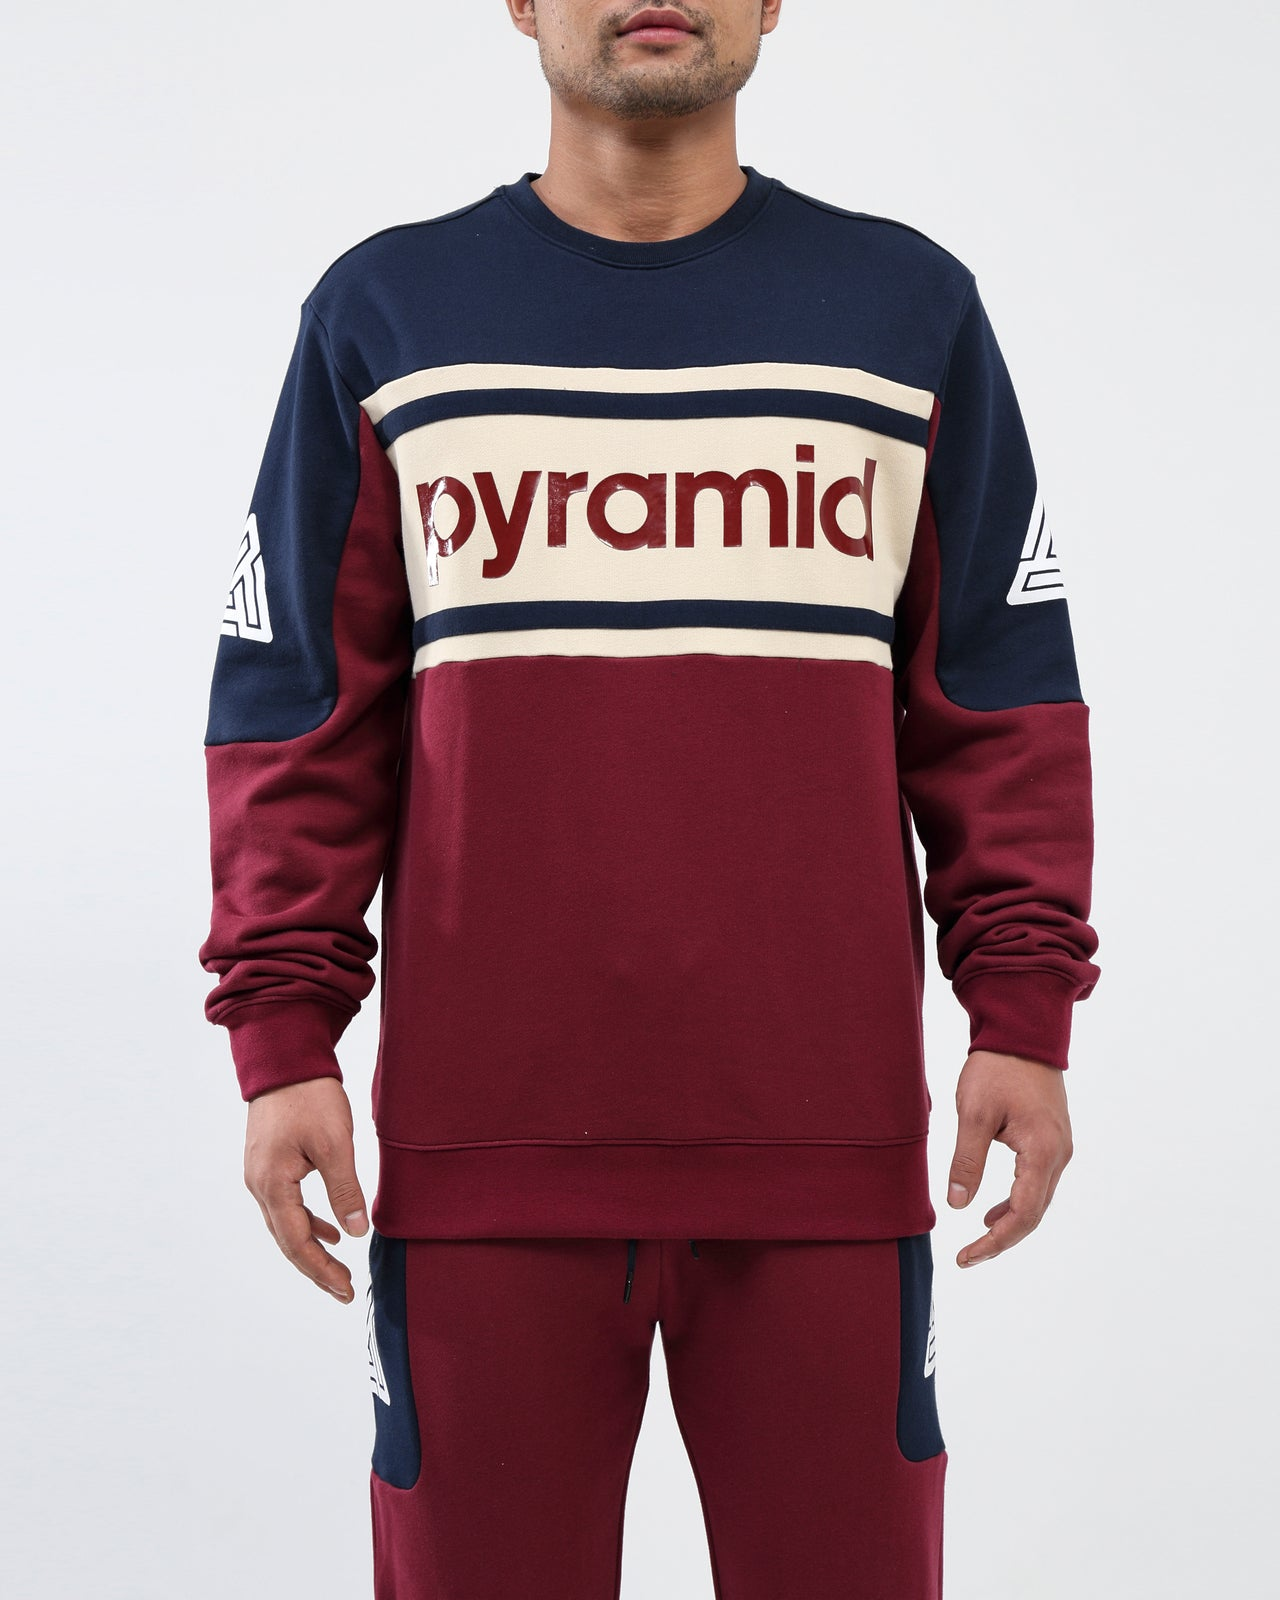 Pyramid Jersey Crewneck - Color: Burgundy